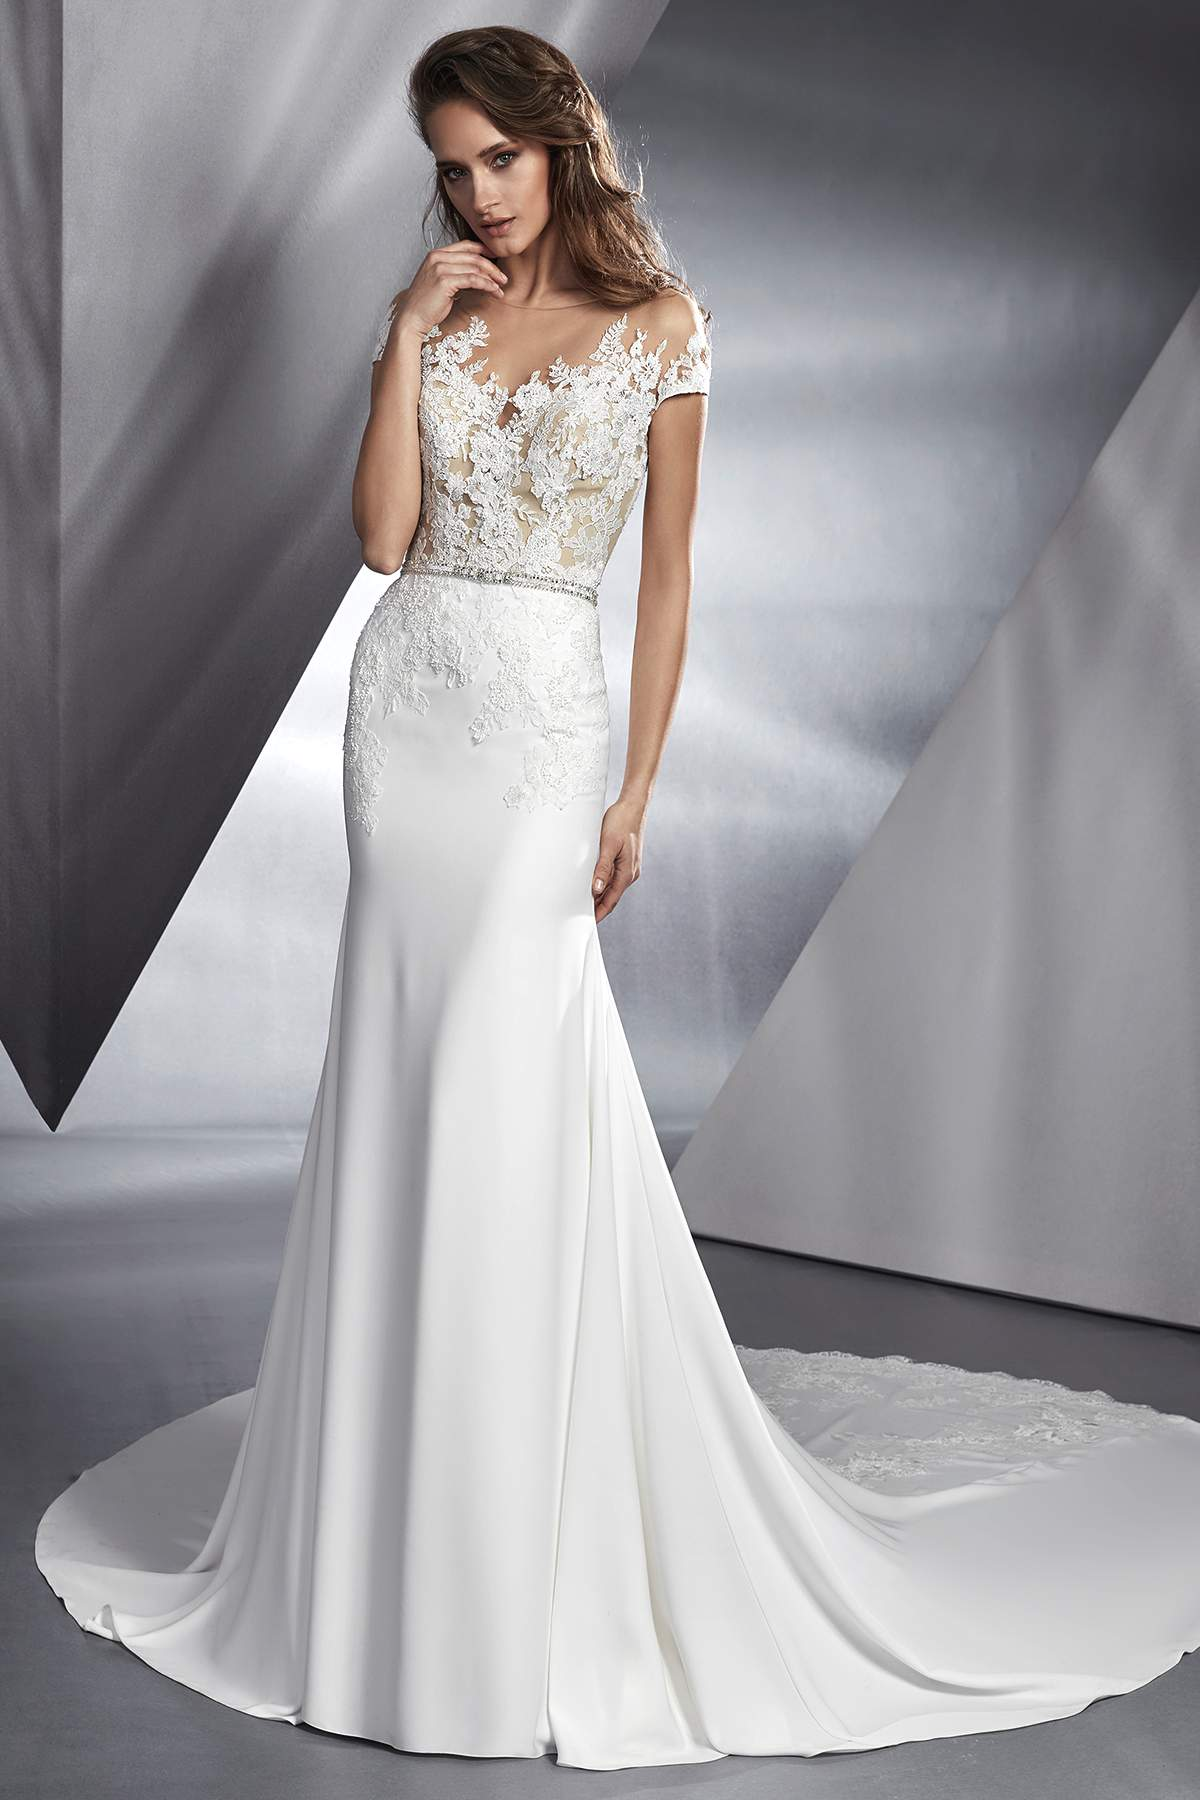 Beth by Le Papillon by Modeca - Find Your Dream Dress